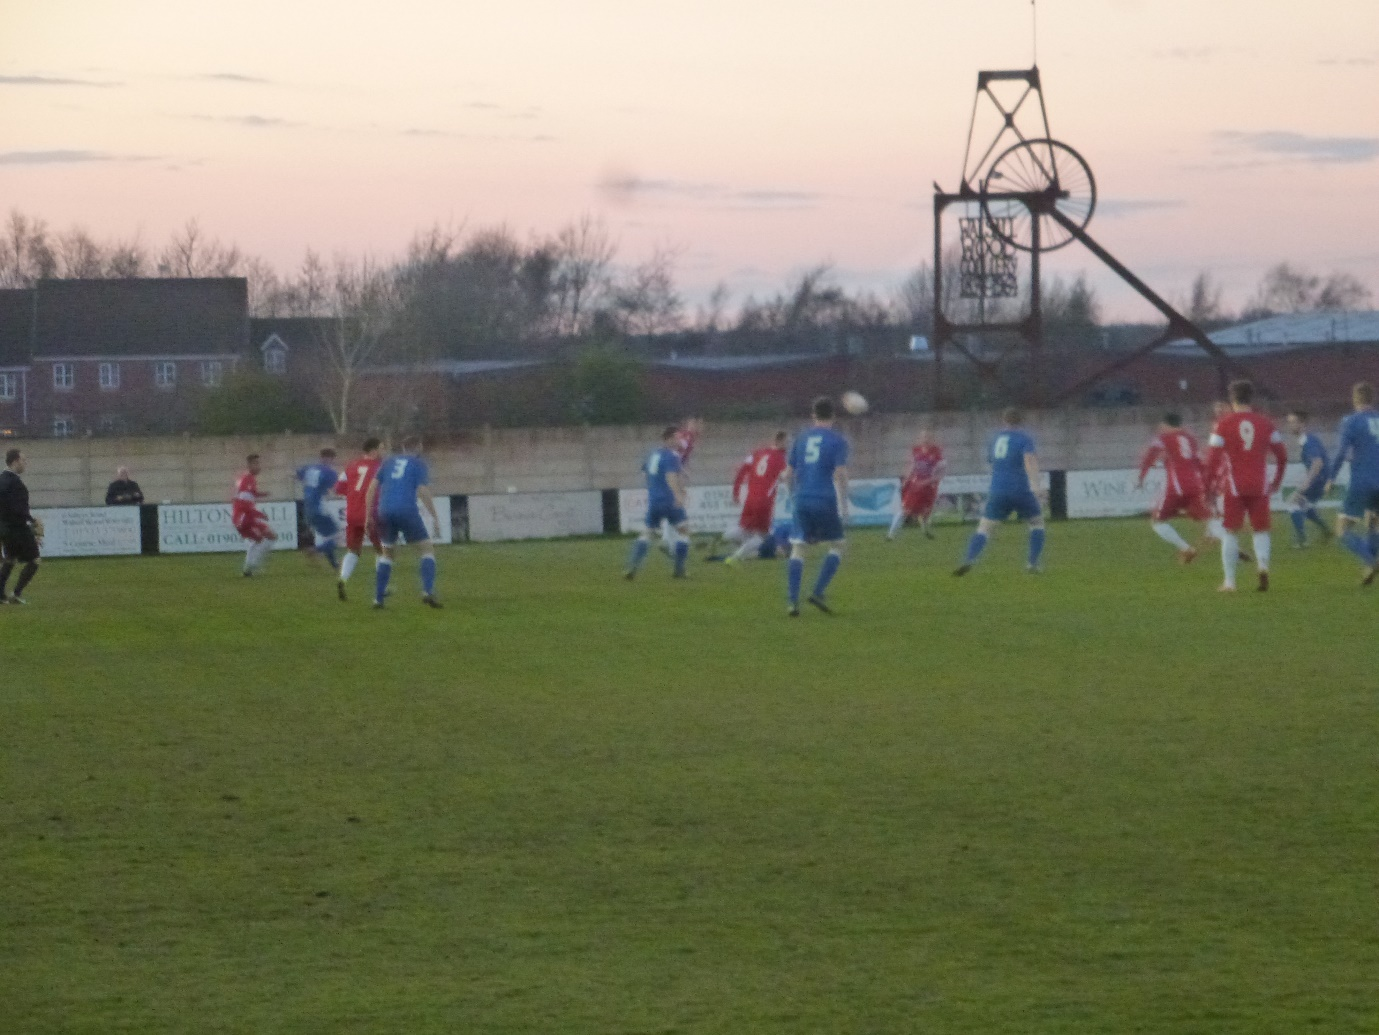 An early foray into the Wood half of the pitch in the first half